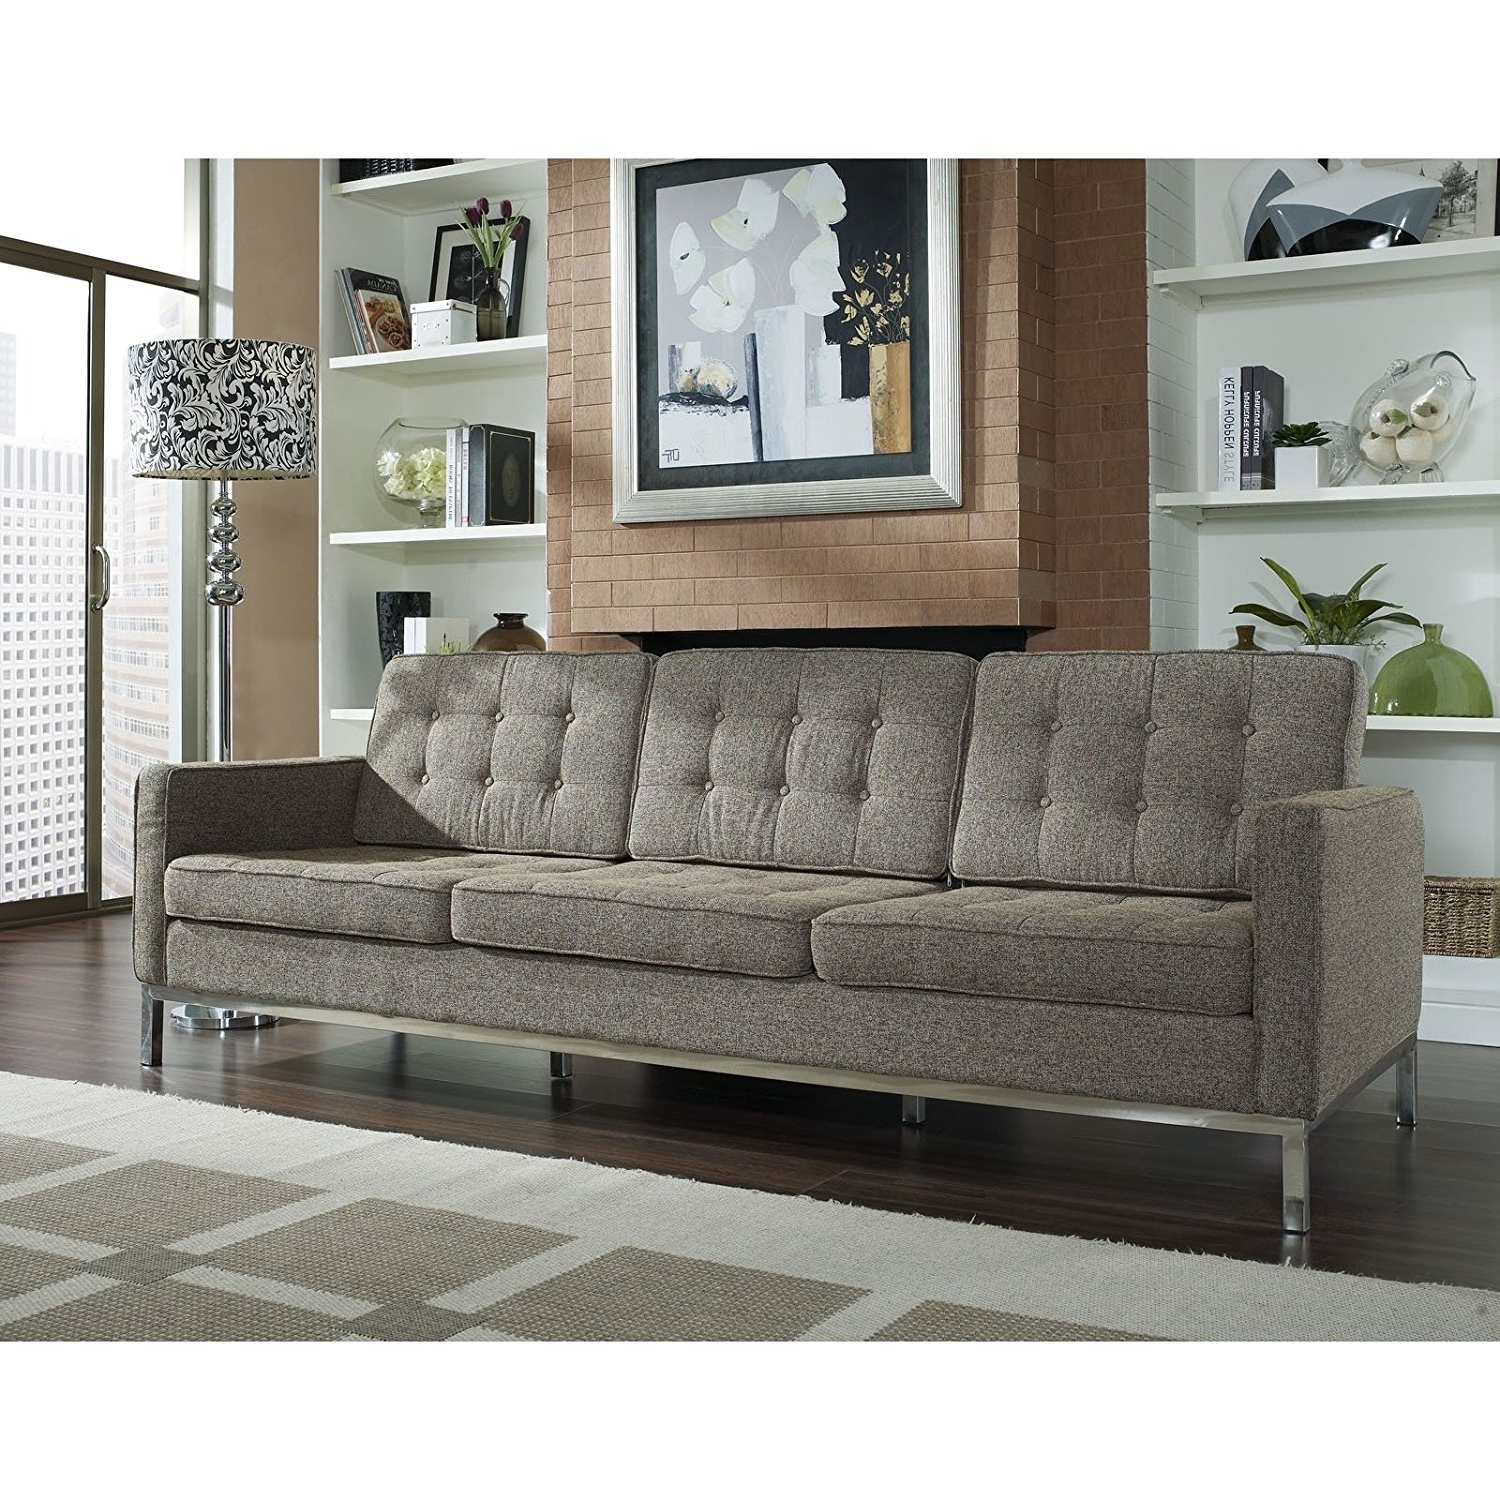 Amazon: Modway Florence Style Sofa In Oatmeal Wool: Kitchen Within Well Known Florence Large Sofas (View 4 of 15)